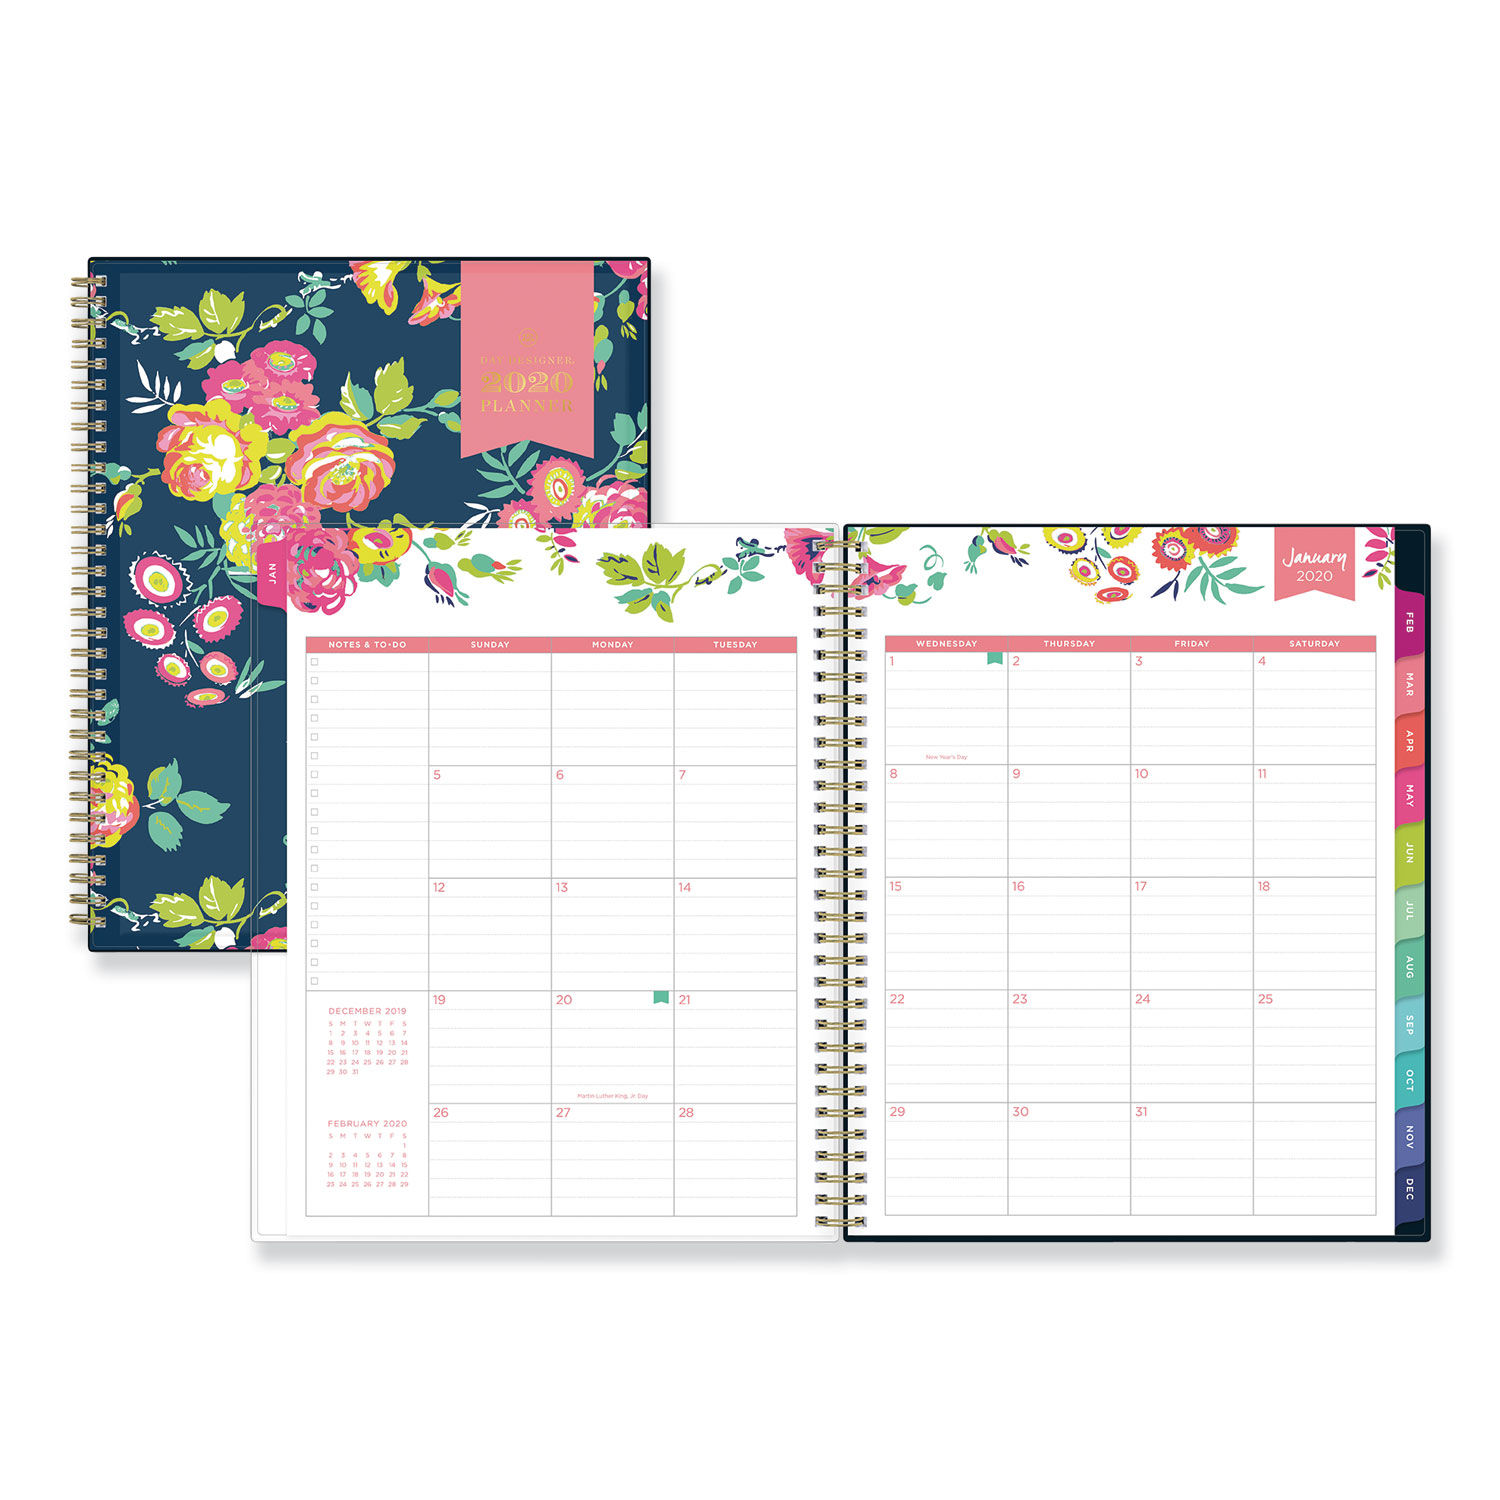 picture relating to Day Designer for Blue Sky called Working day Designer CYO Weekly/Regular monthly Planner, 11 x 8 1/2, Armed forces/Floral, 2020